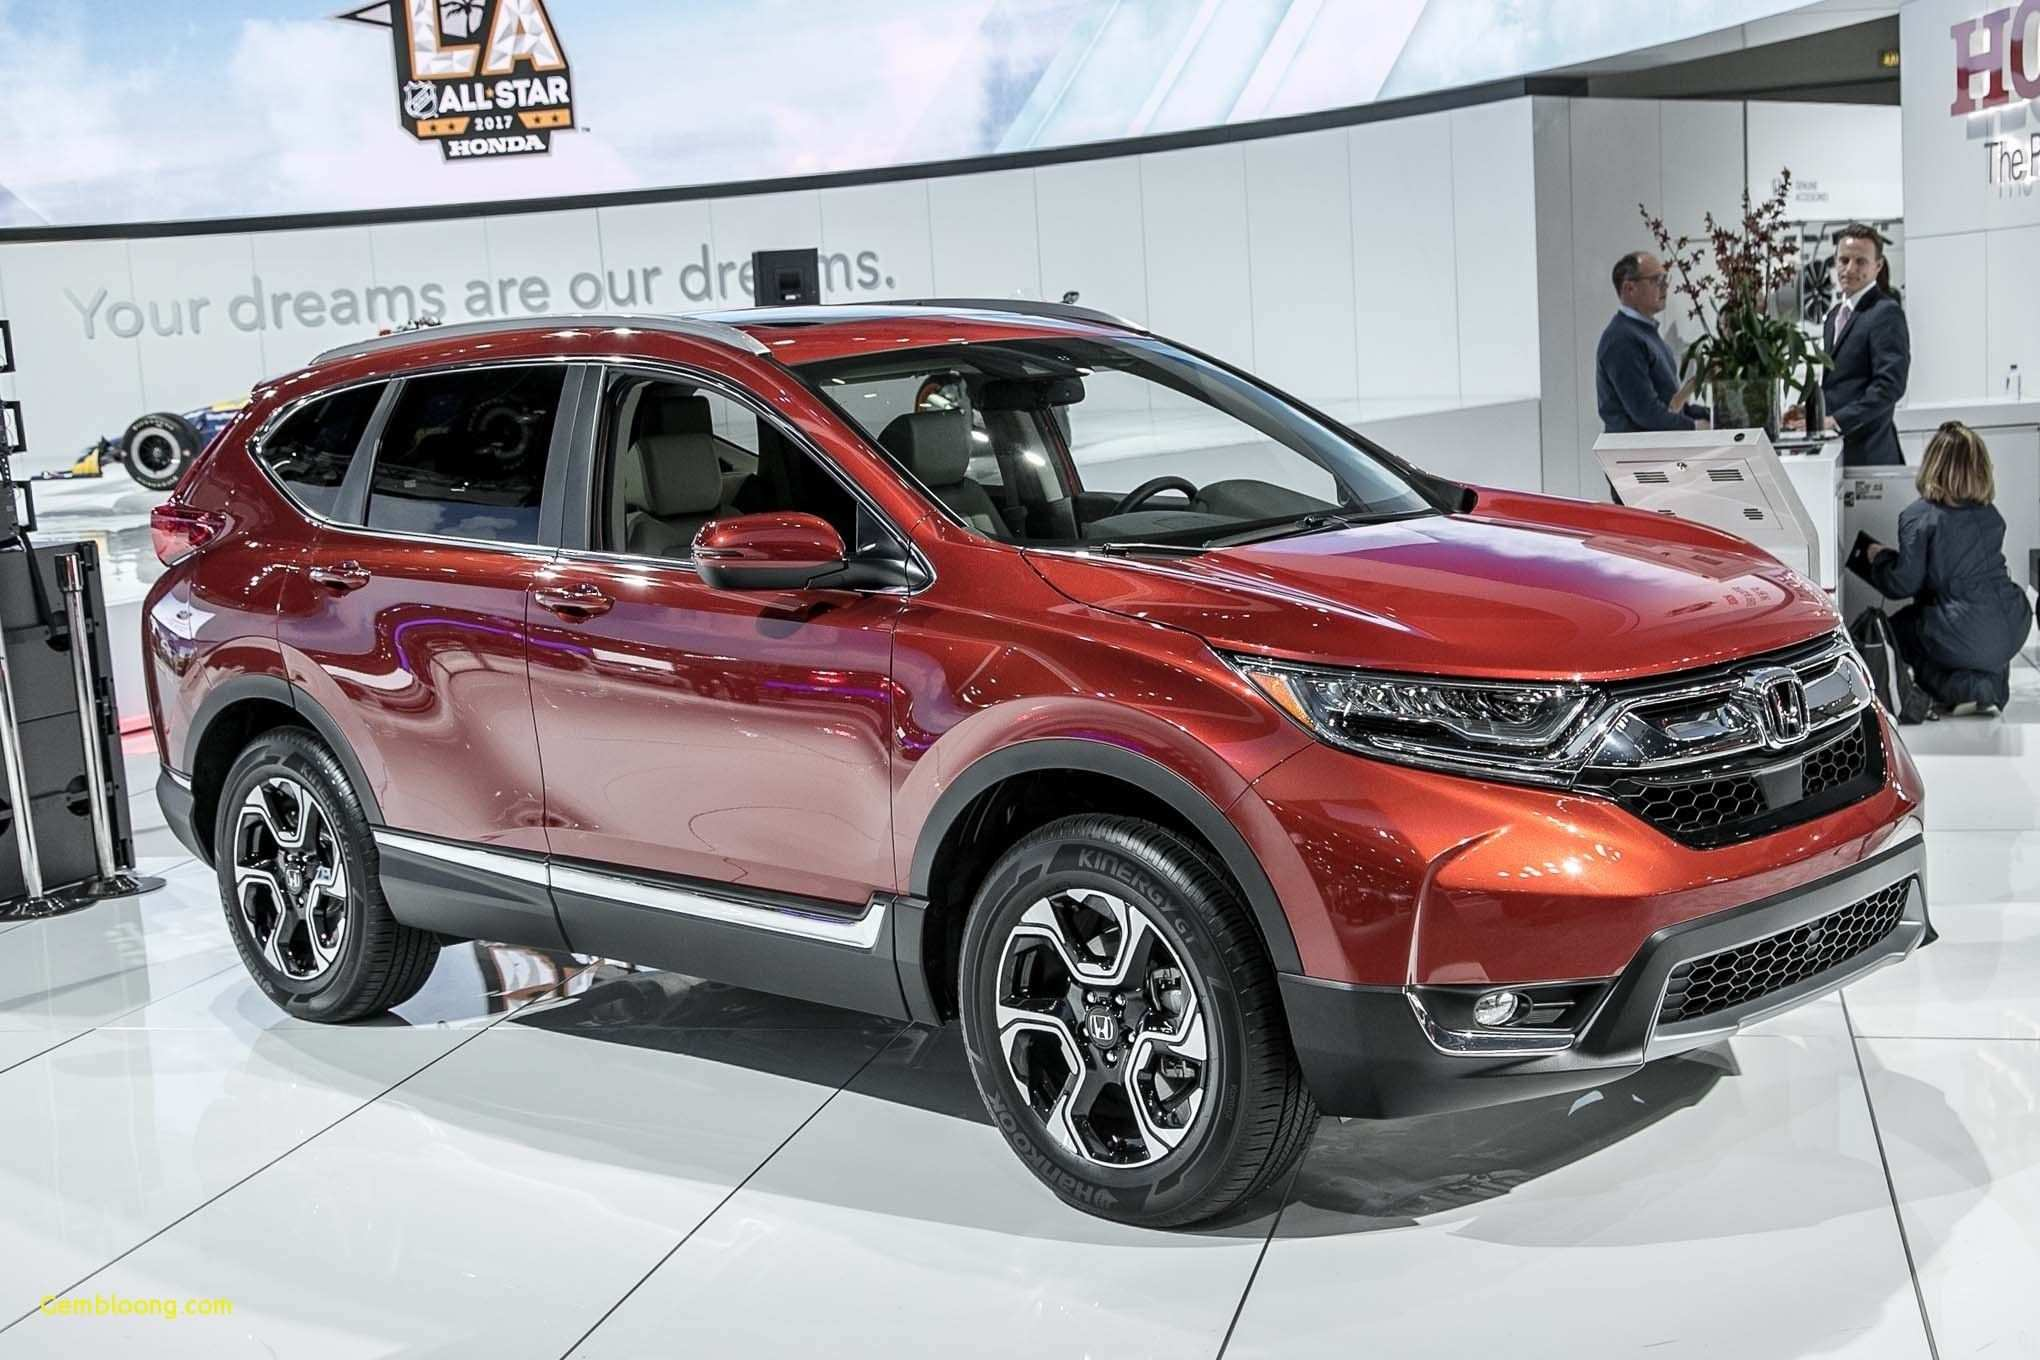 95 The Best 2020 Honda Ridgelineand Interior